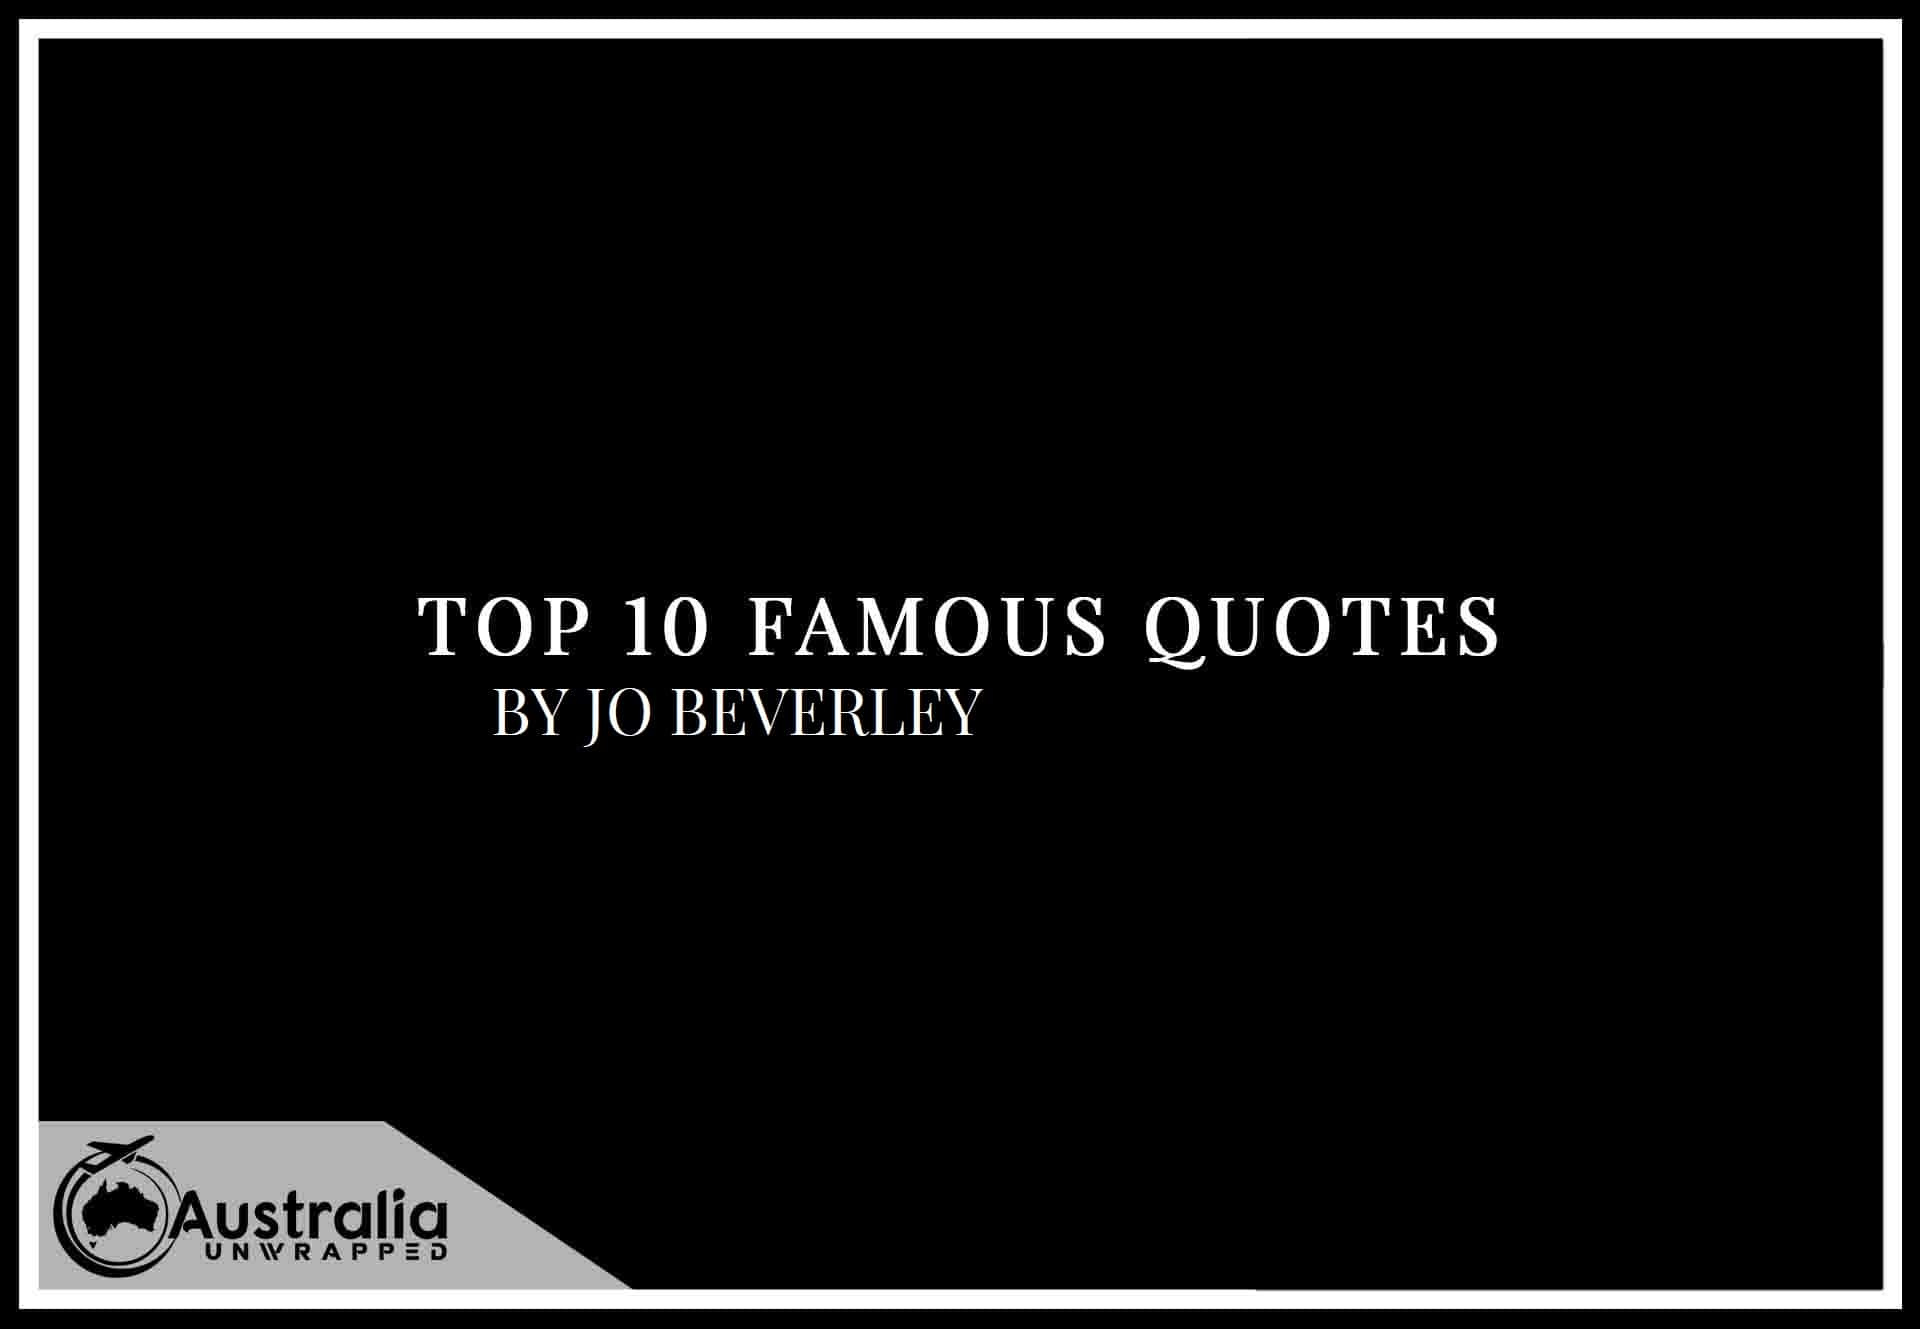 Top 10 Famous Quotes by Author Jo Beverley